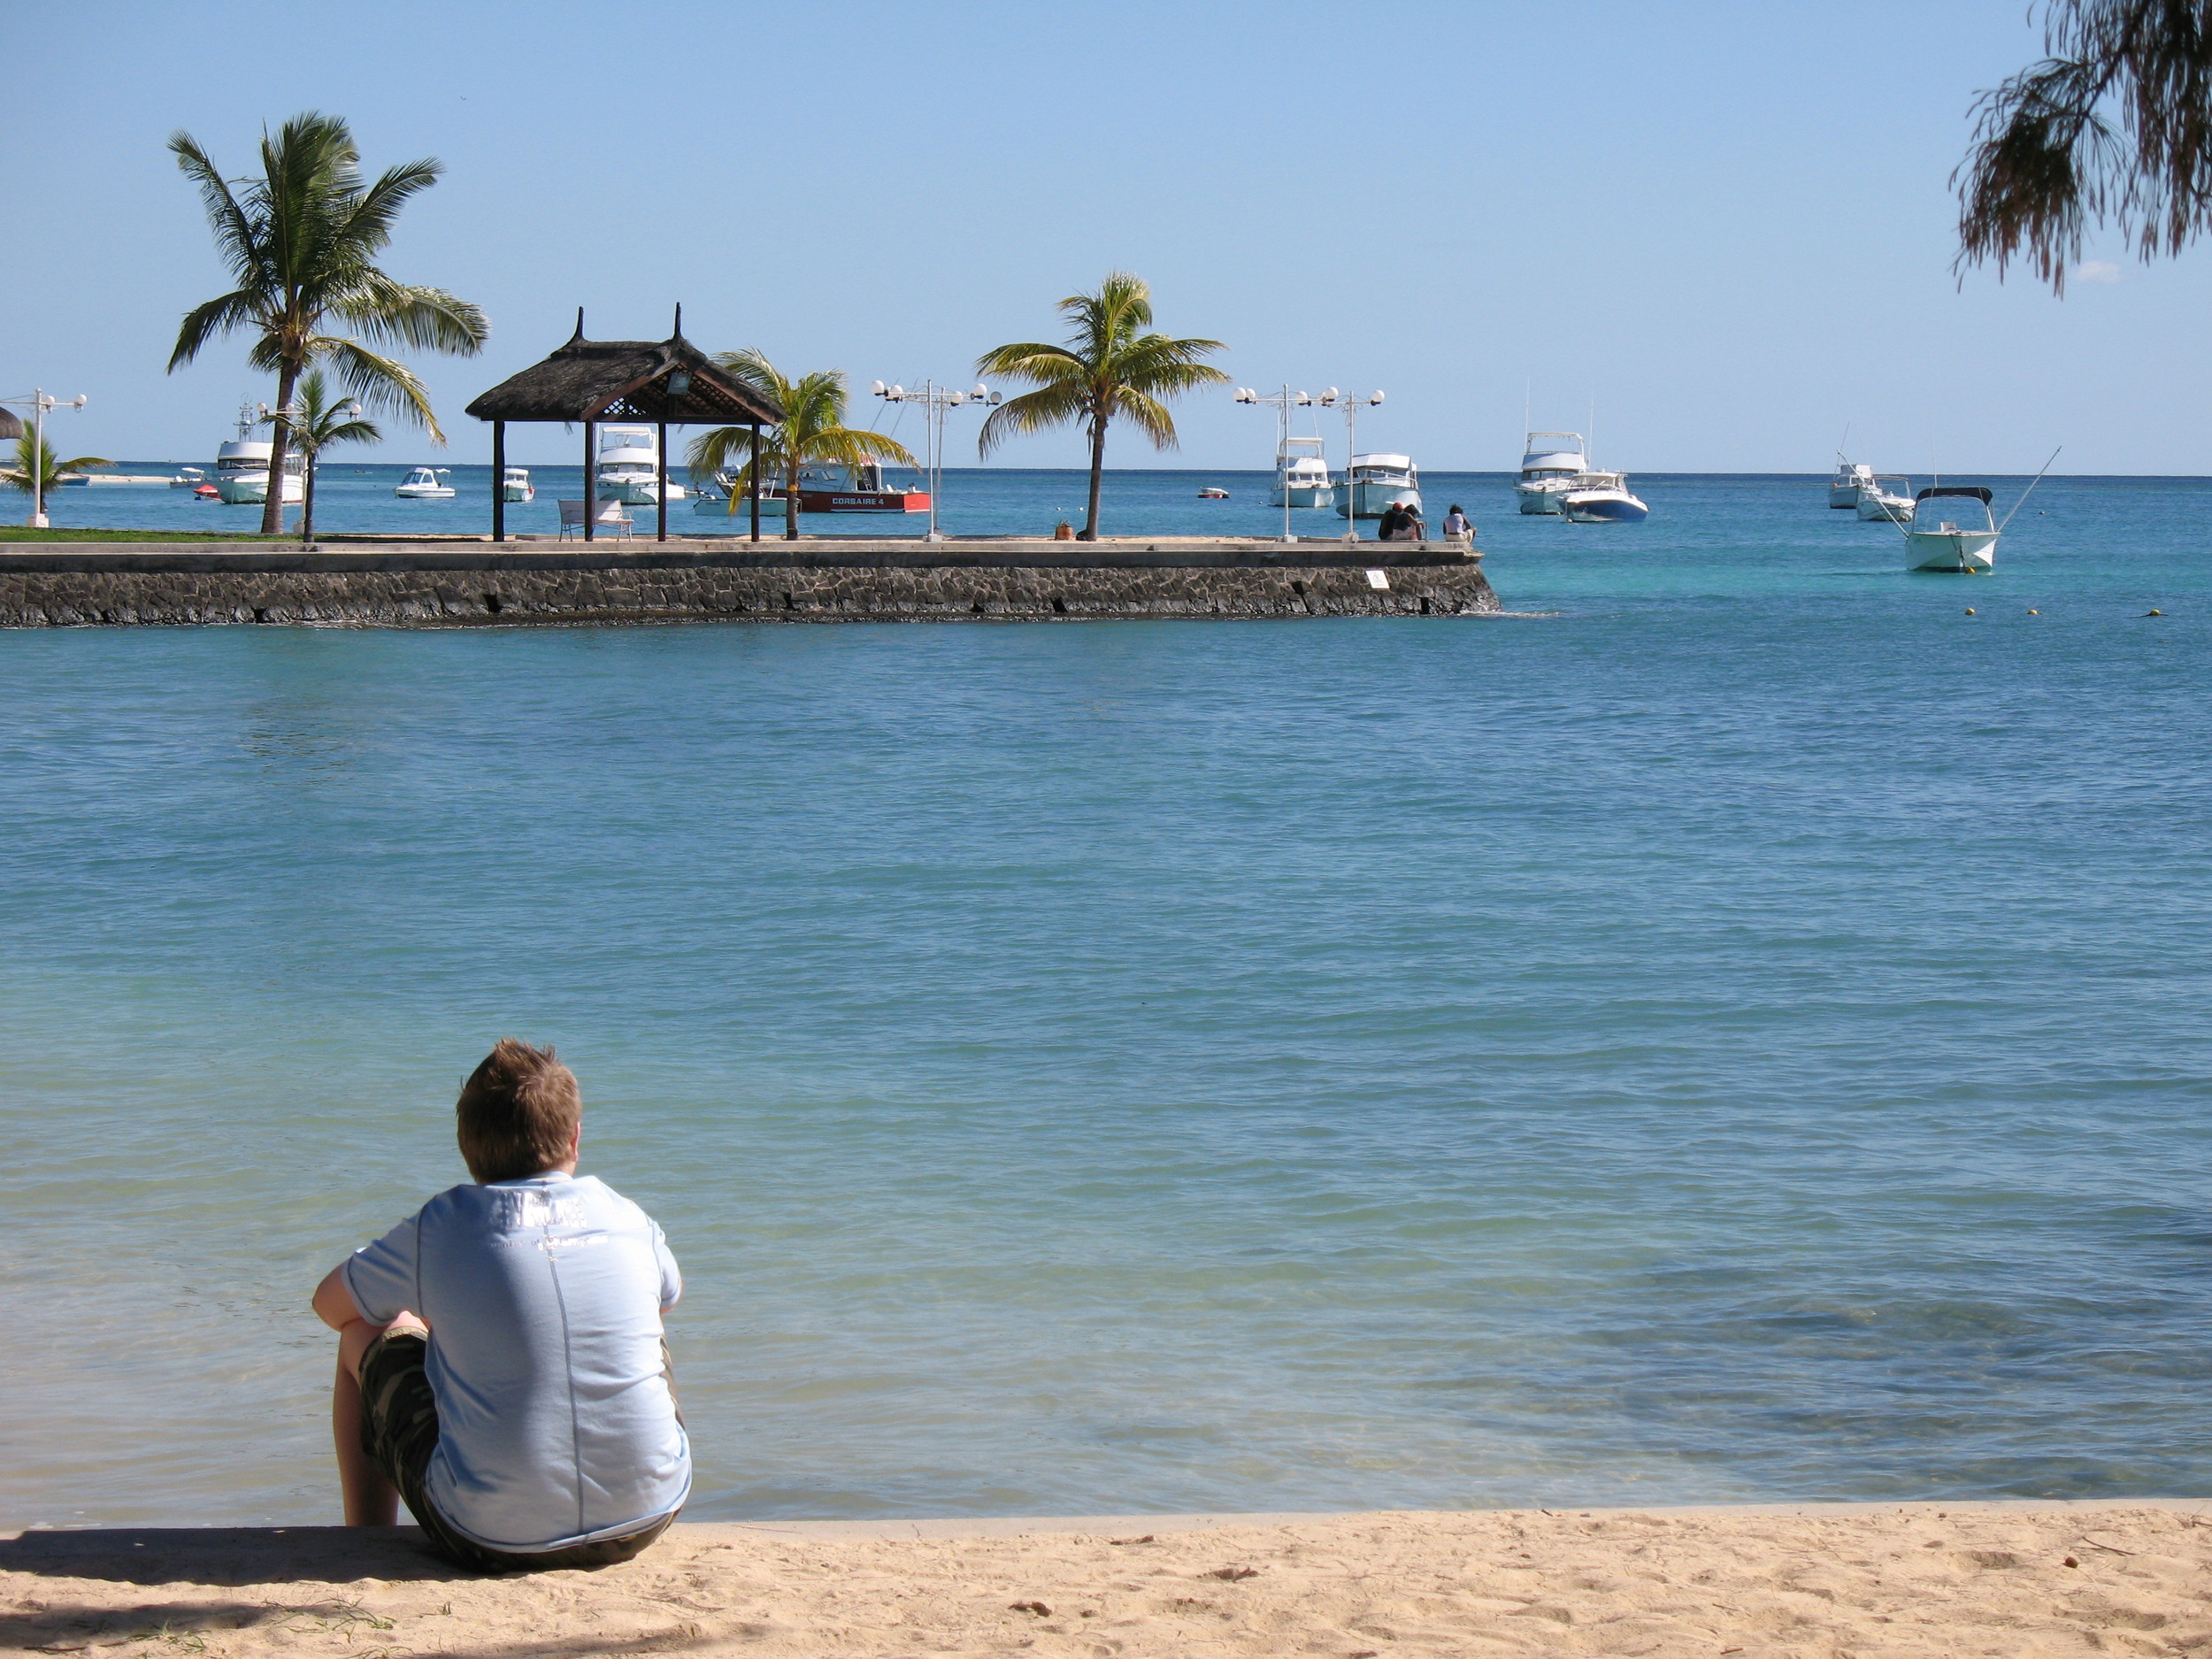 A 14-year-old me reflecting towards the end of a fantastic three-week holiday in Mauritius.